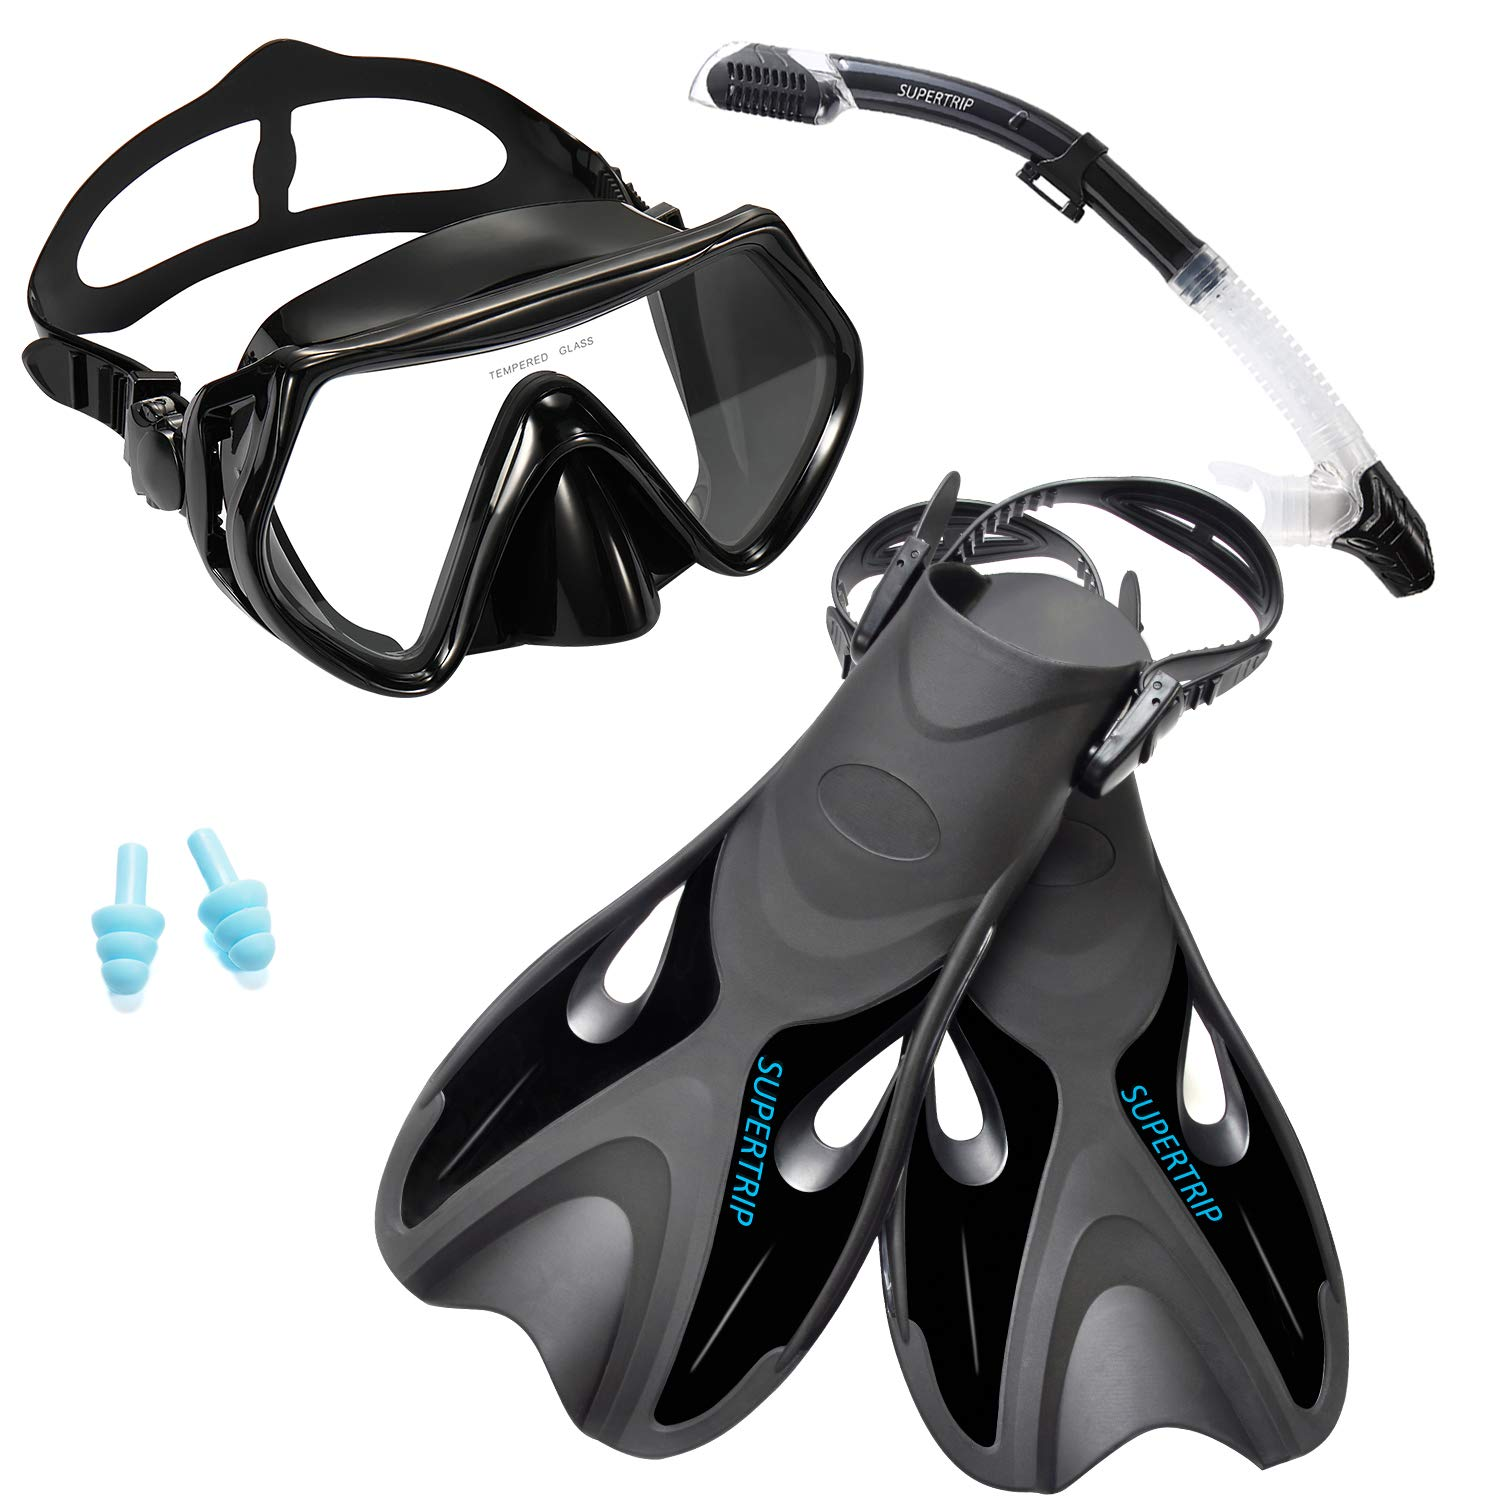 Supertrip Snorkel Set with Fins Impact Resistant Tempered Glass Anti-Fog Snorkeling Mask-Adjustable Diving Swimming Fins/Flippers-Dry Top Snorkel Included(Black S/M) by Supertrip